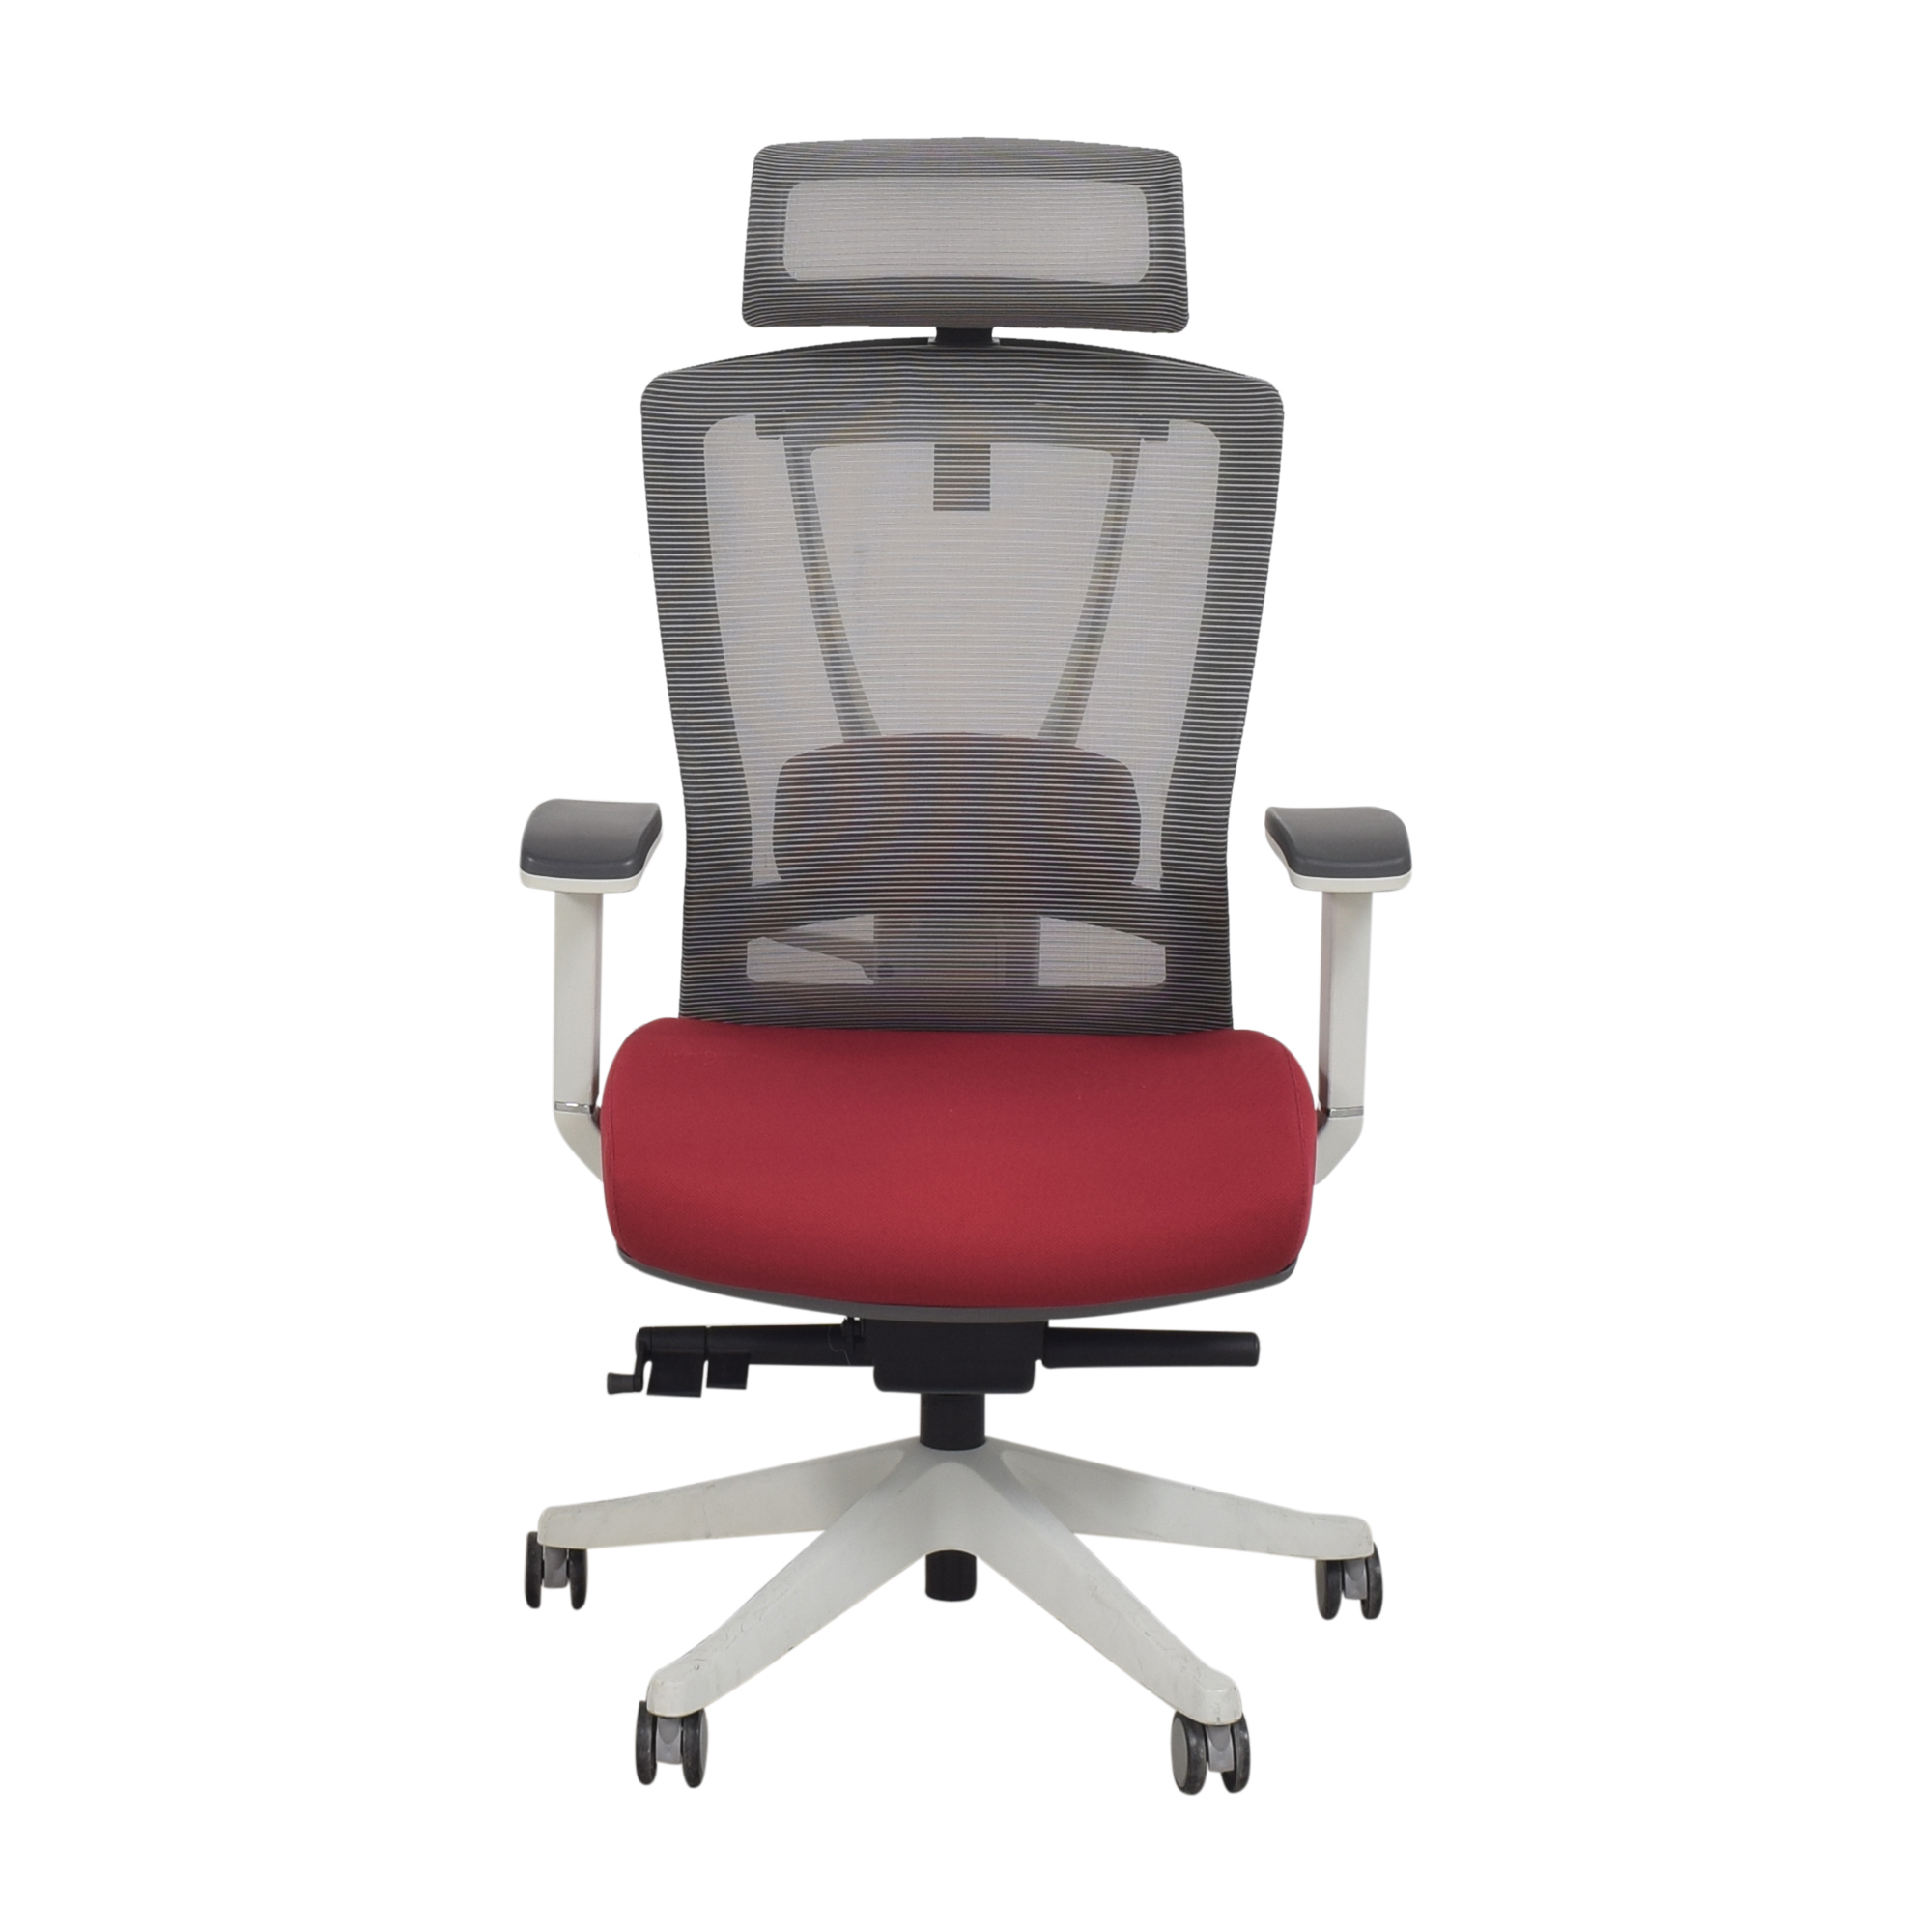 Autonomous Autonomous ErgoChair 2 Office Chair Home Office Chairs